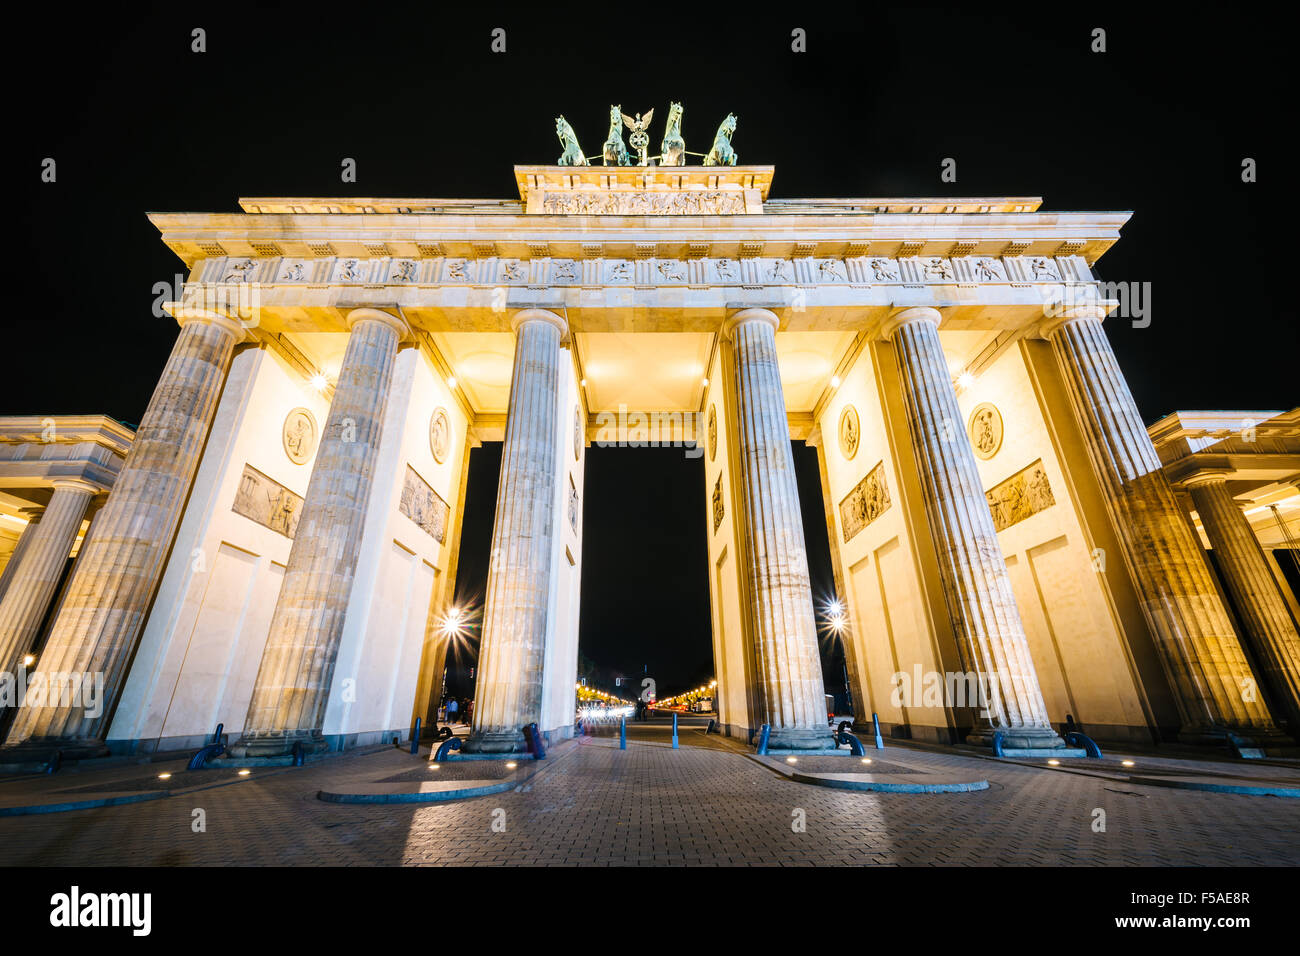 The Brandenburg Gate at night, in Berlin, Germany. - Stock Image